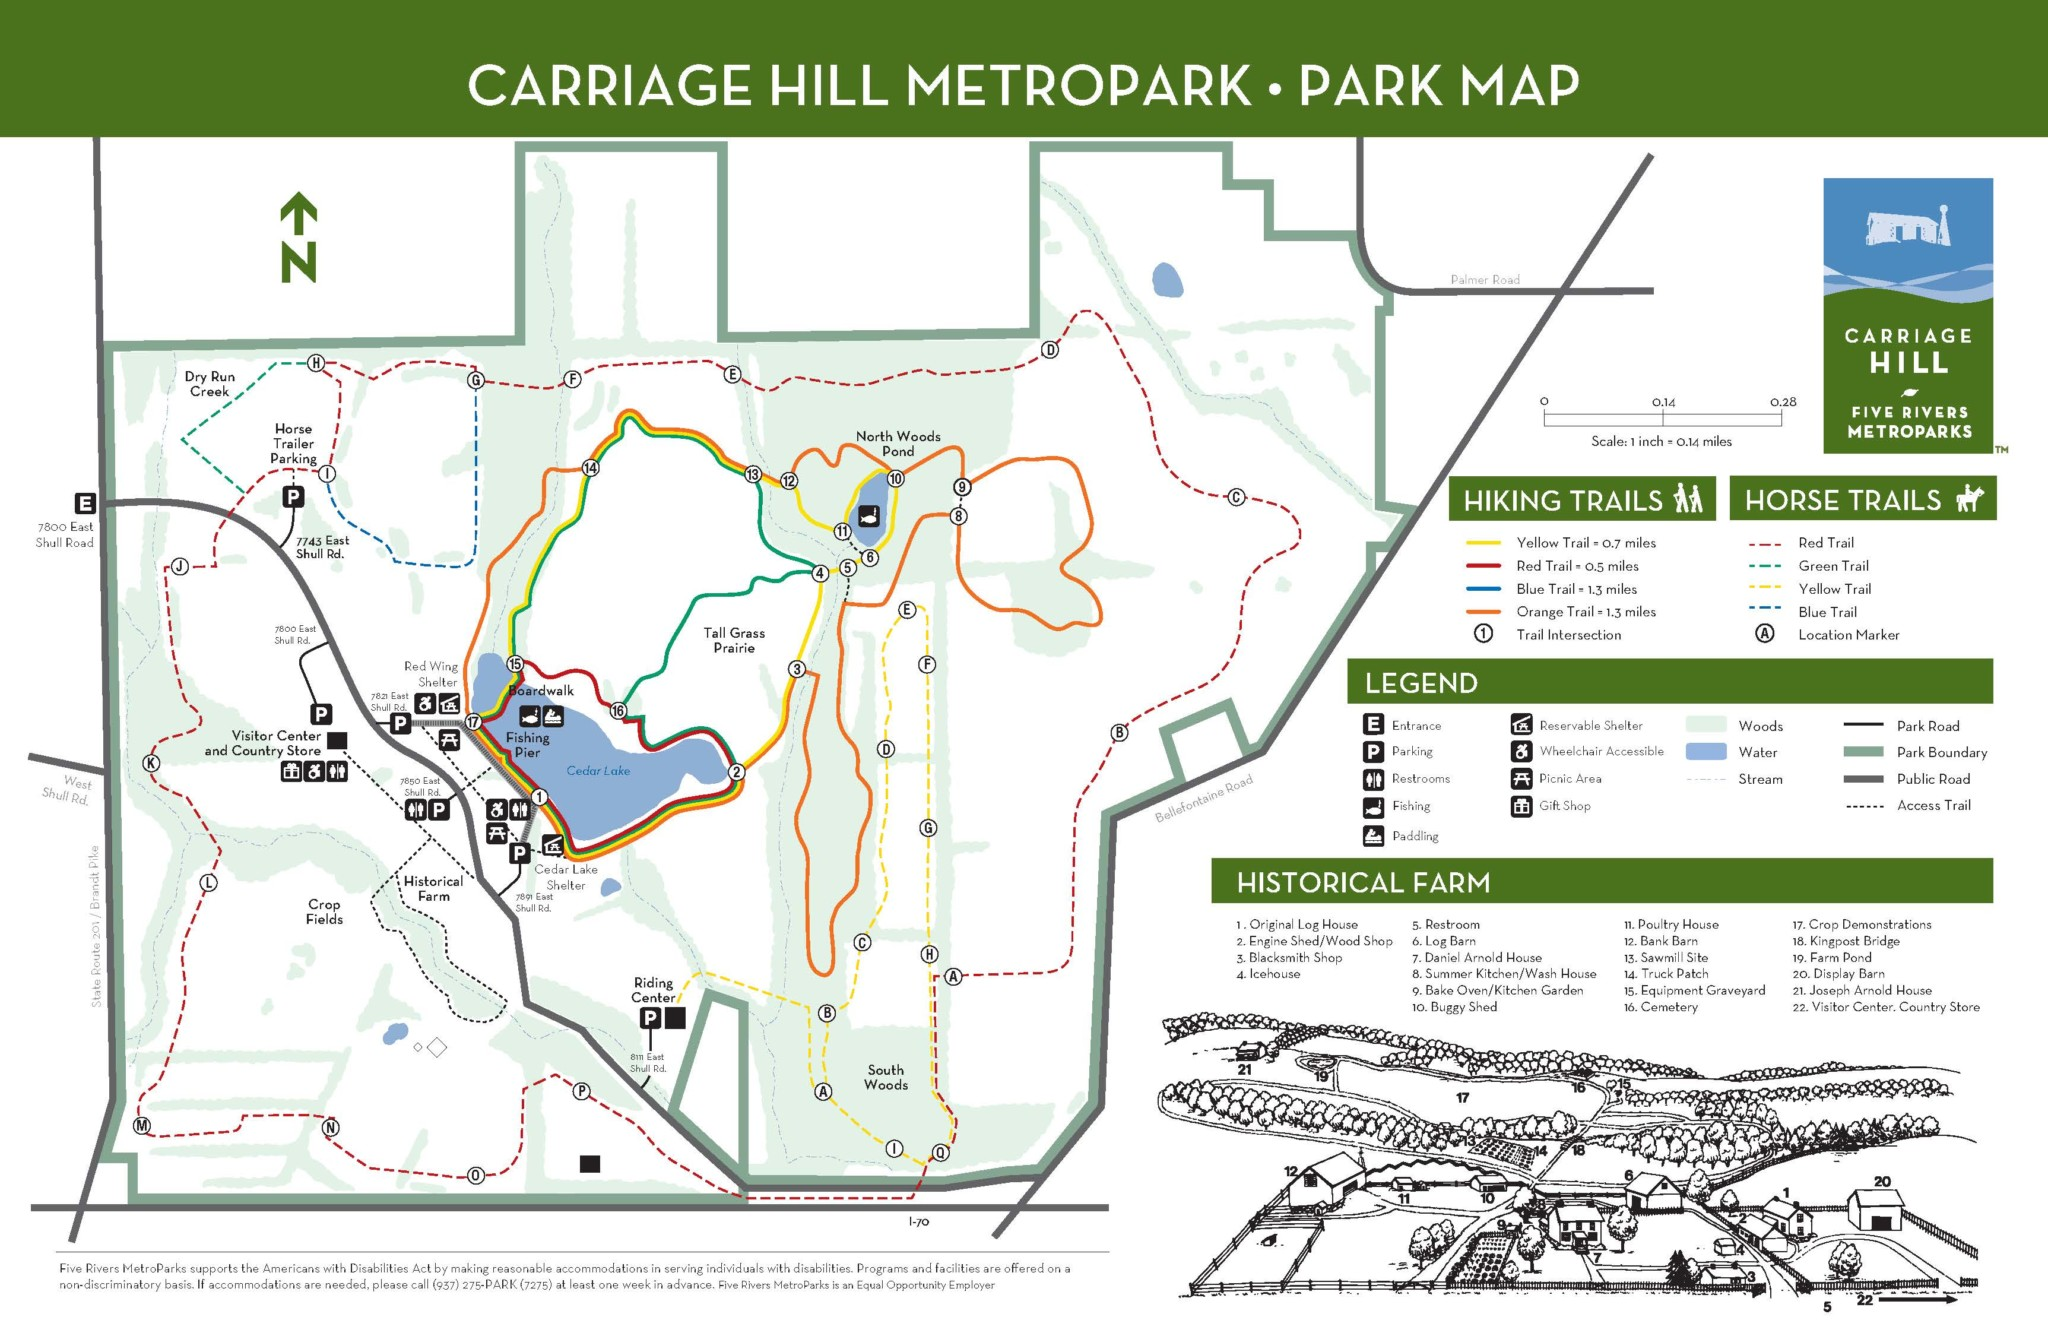 Christmas Hill Park Map.Carriage Hill Metropark Five Rivers Metroparks